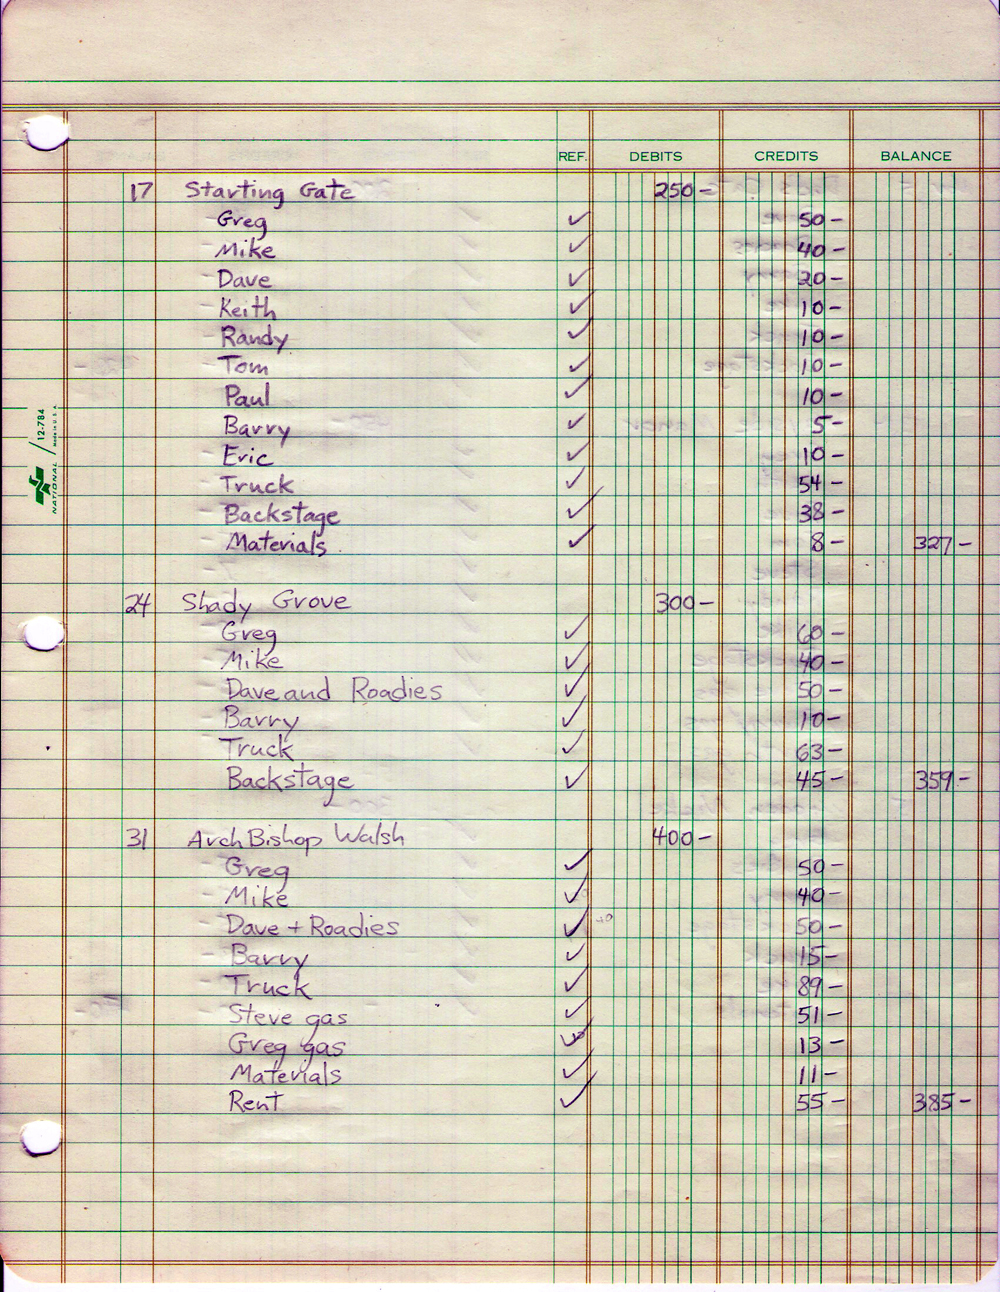 October earnings and expenditure 1981